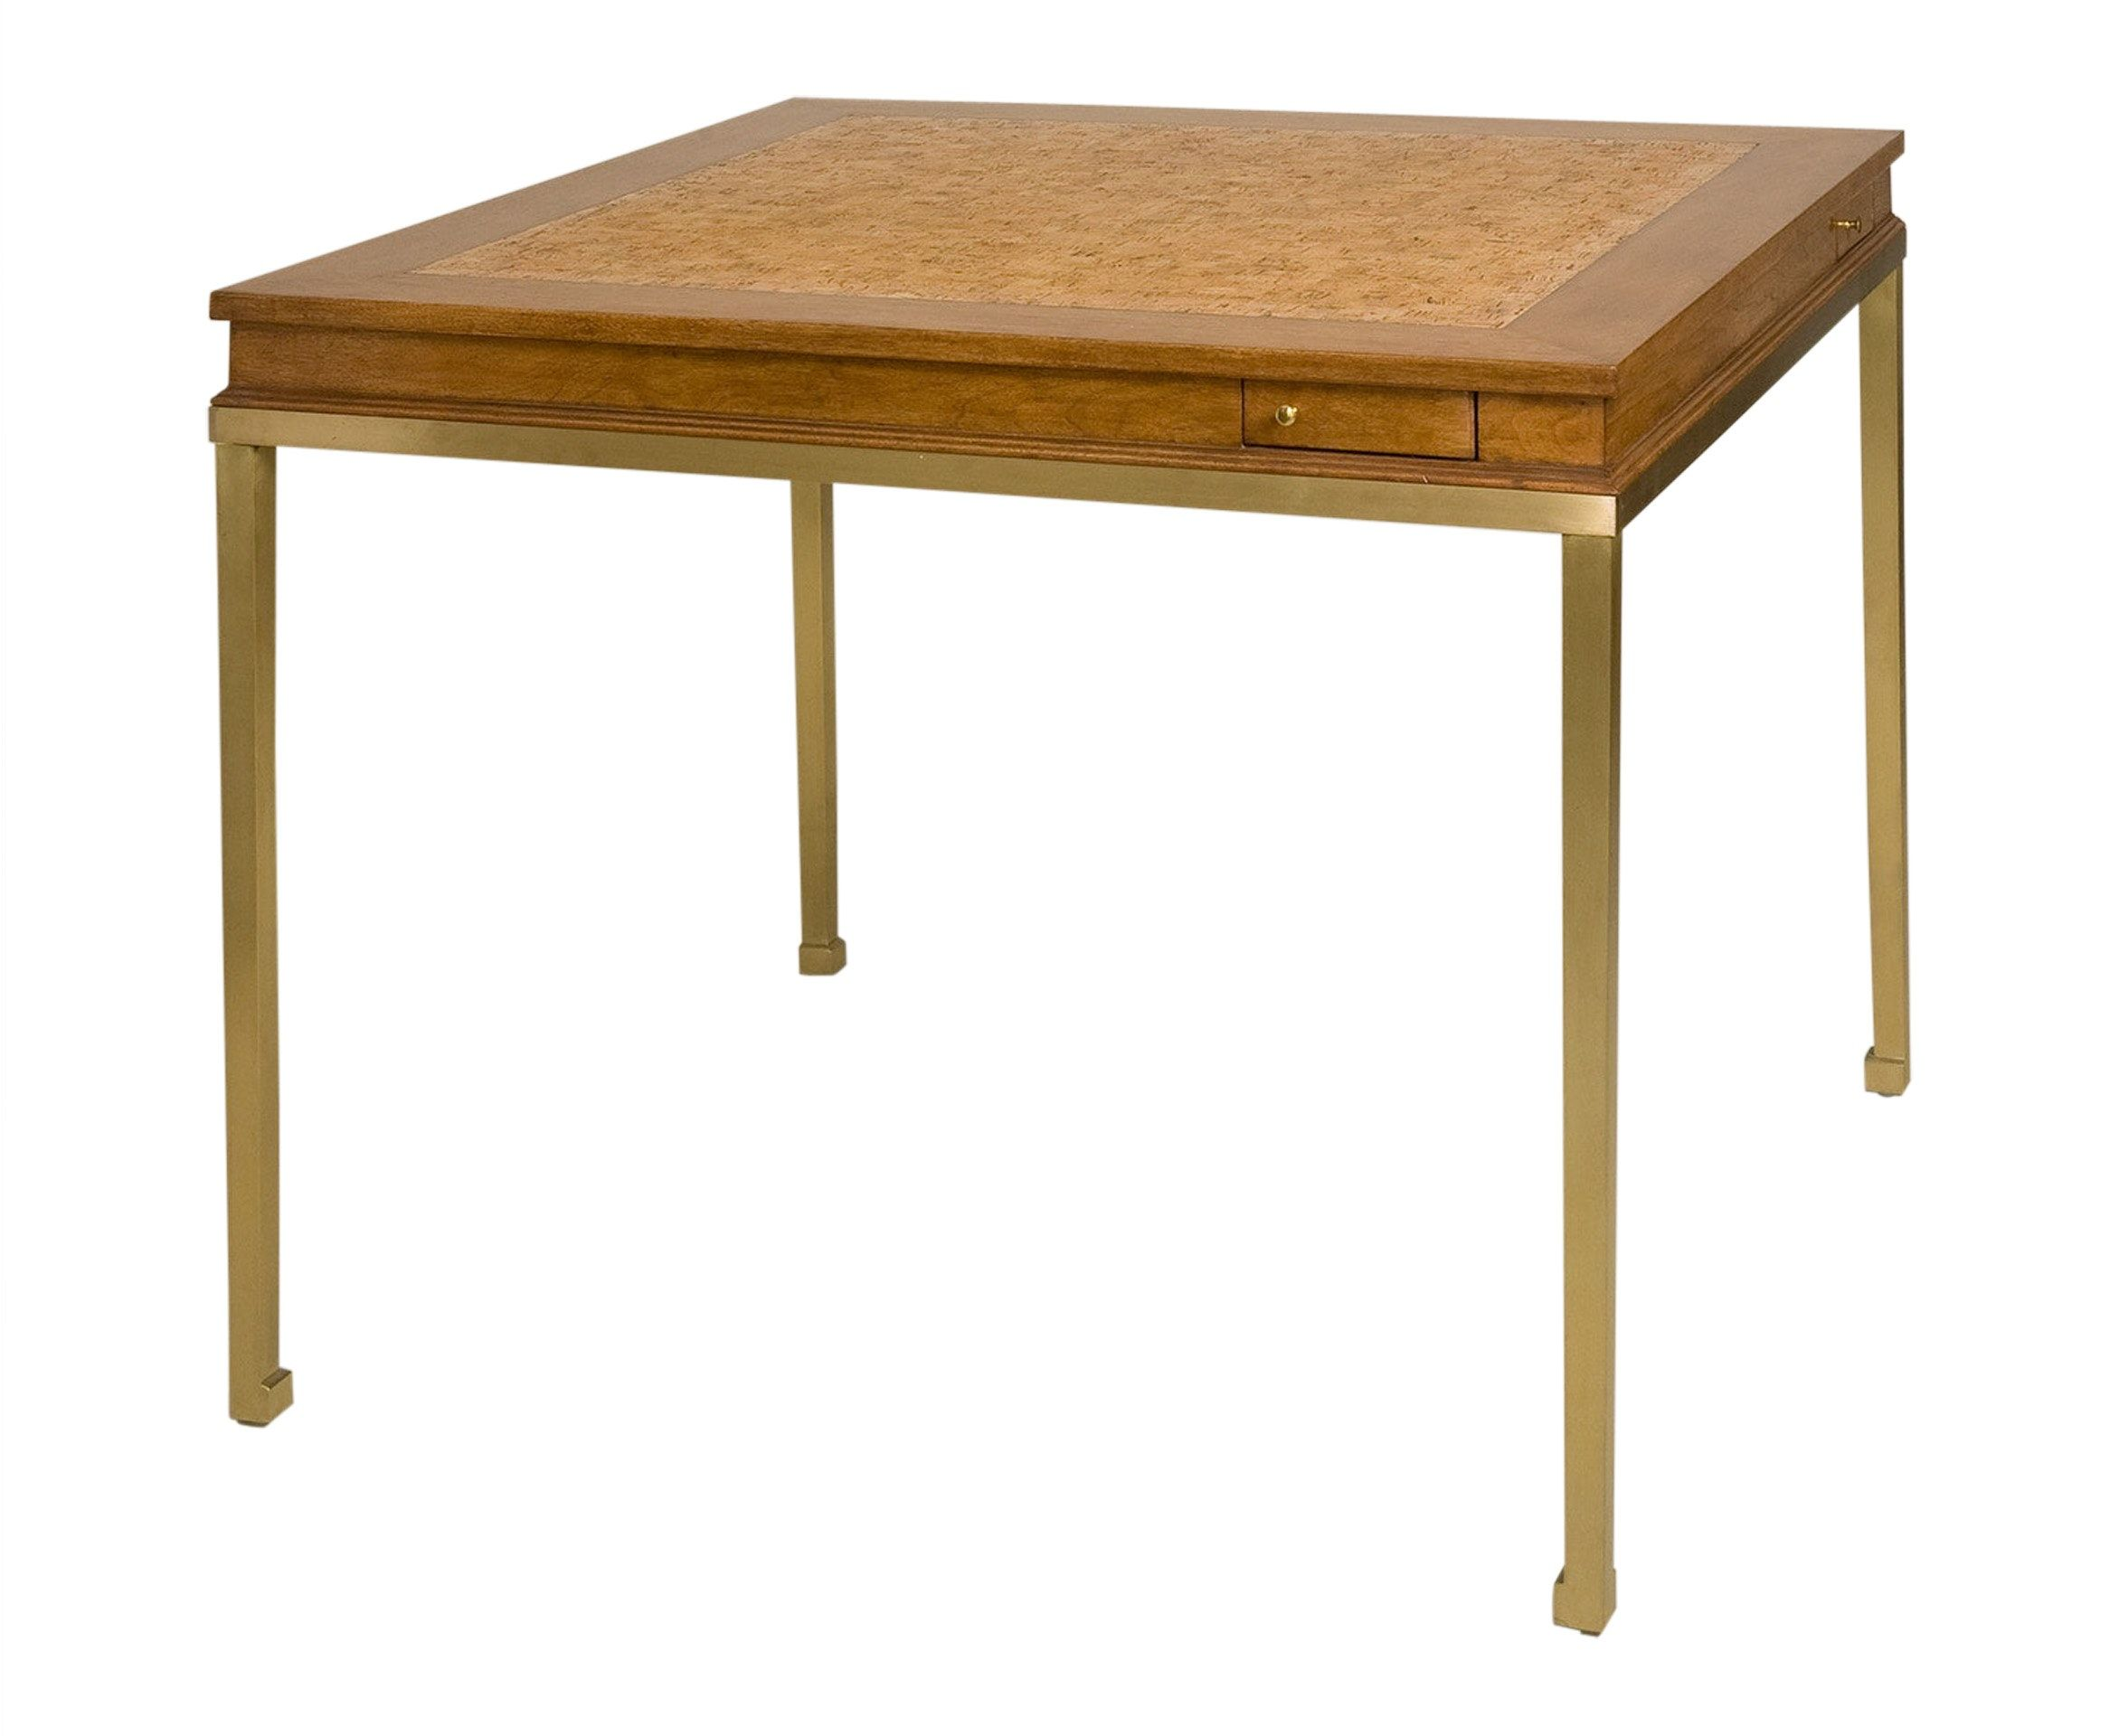 Buy Gregory Game Table By West Knoll Collection Designer Furniture From Dering Hall S Collection Of Contemporary Transit Modern Game Tables Table Games Table